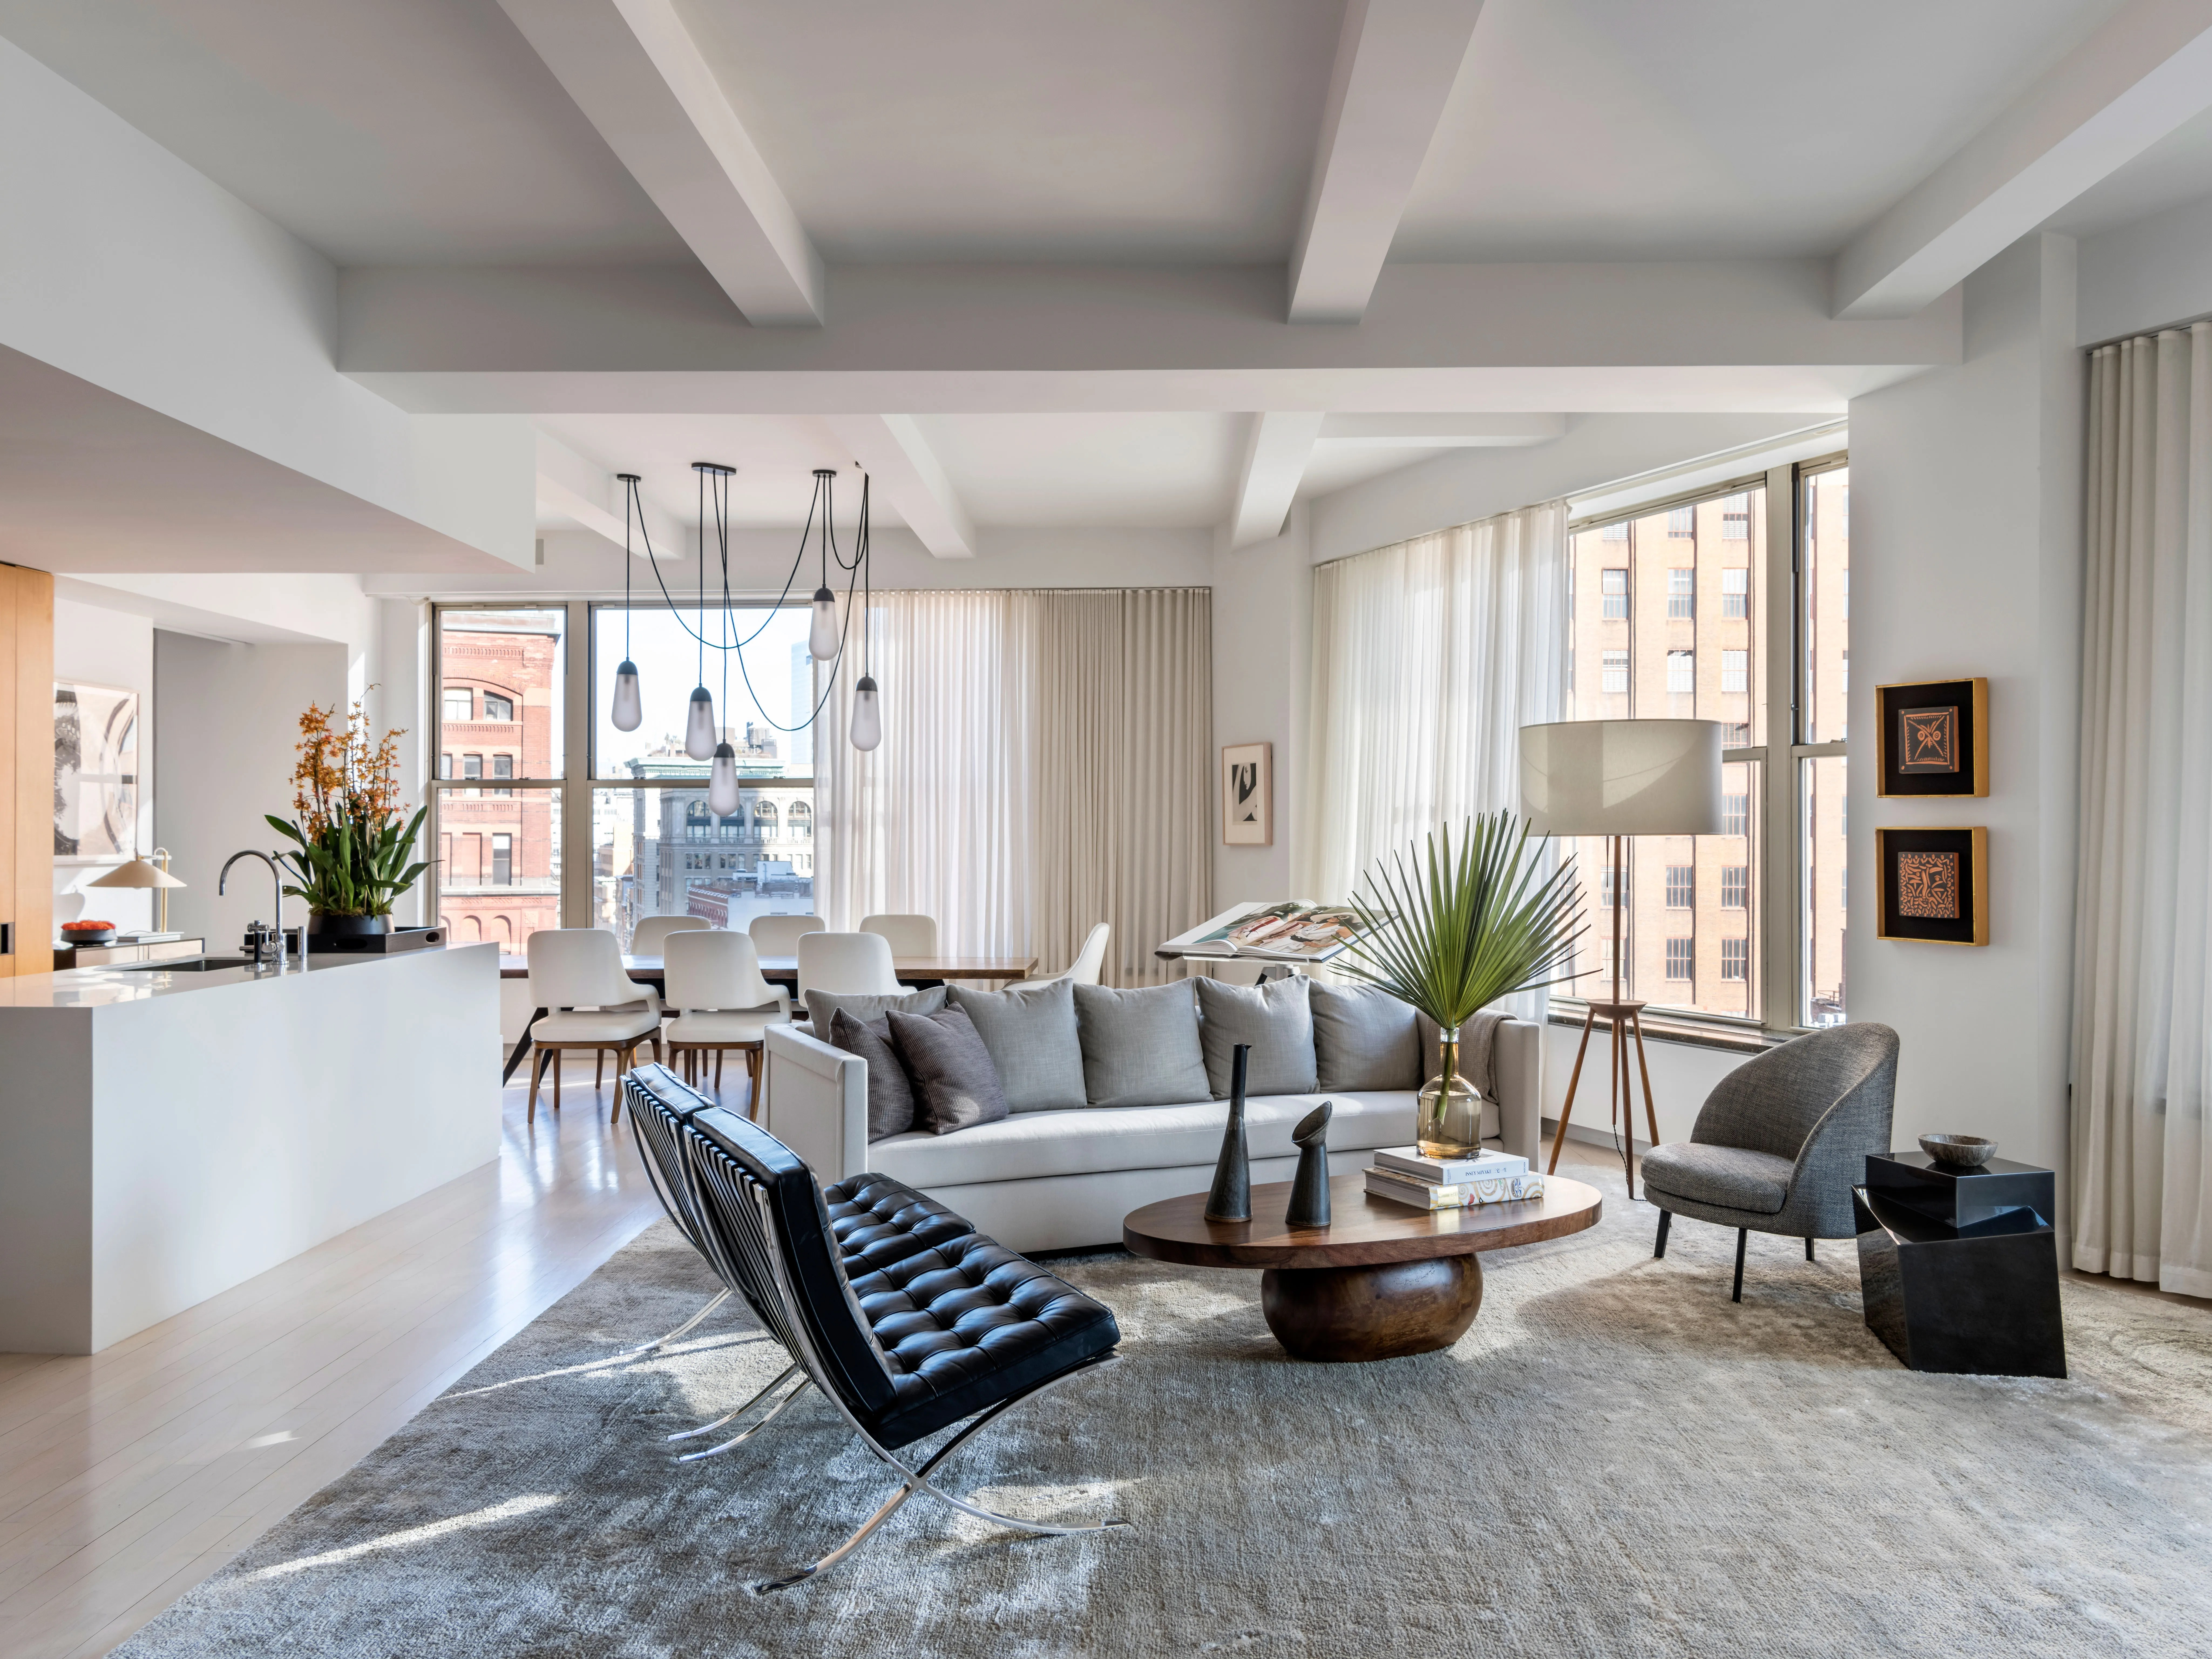 A Hollywood Power Couples Tailored New York Apartment  Architectural Digest